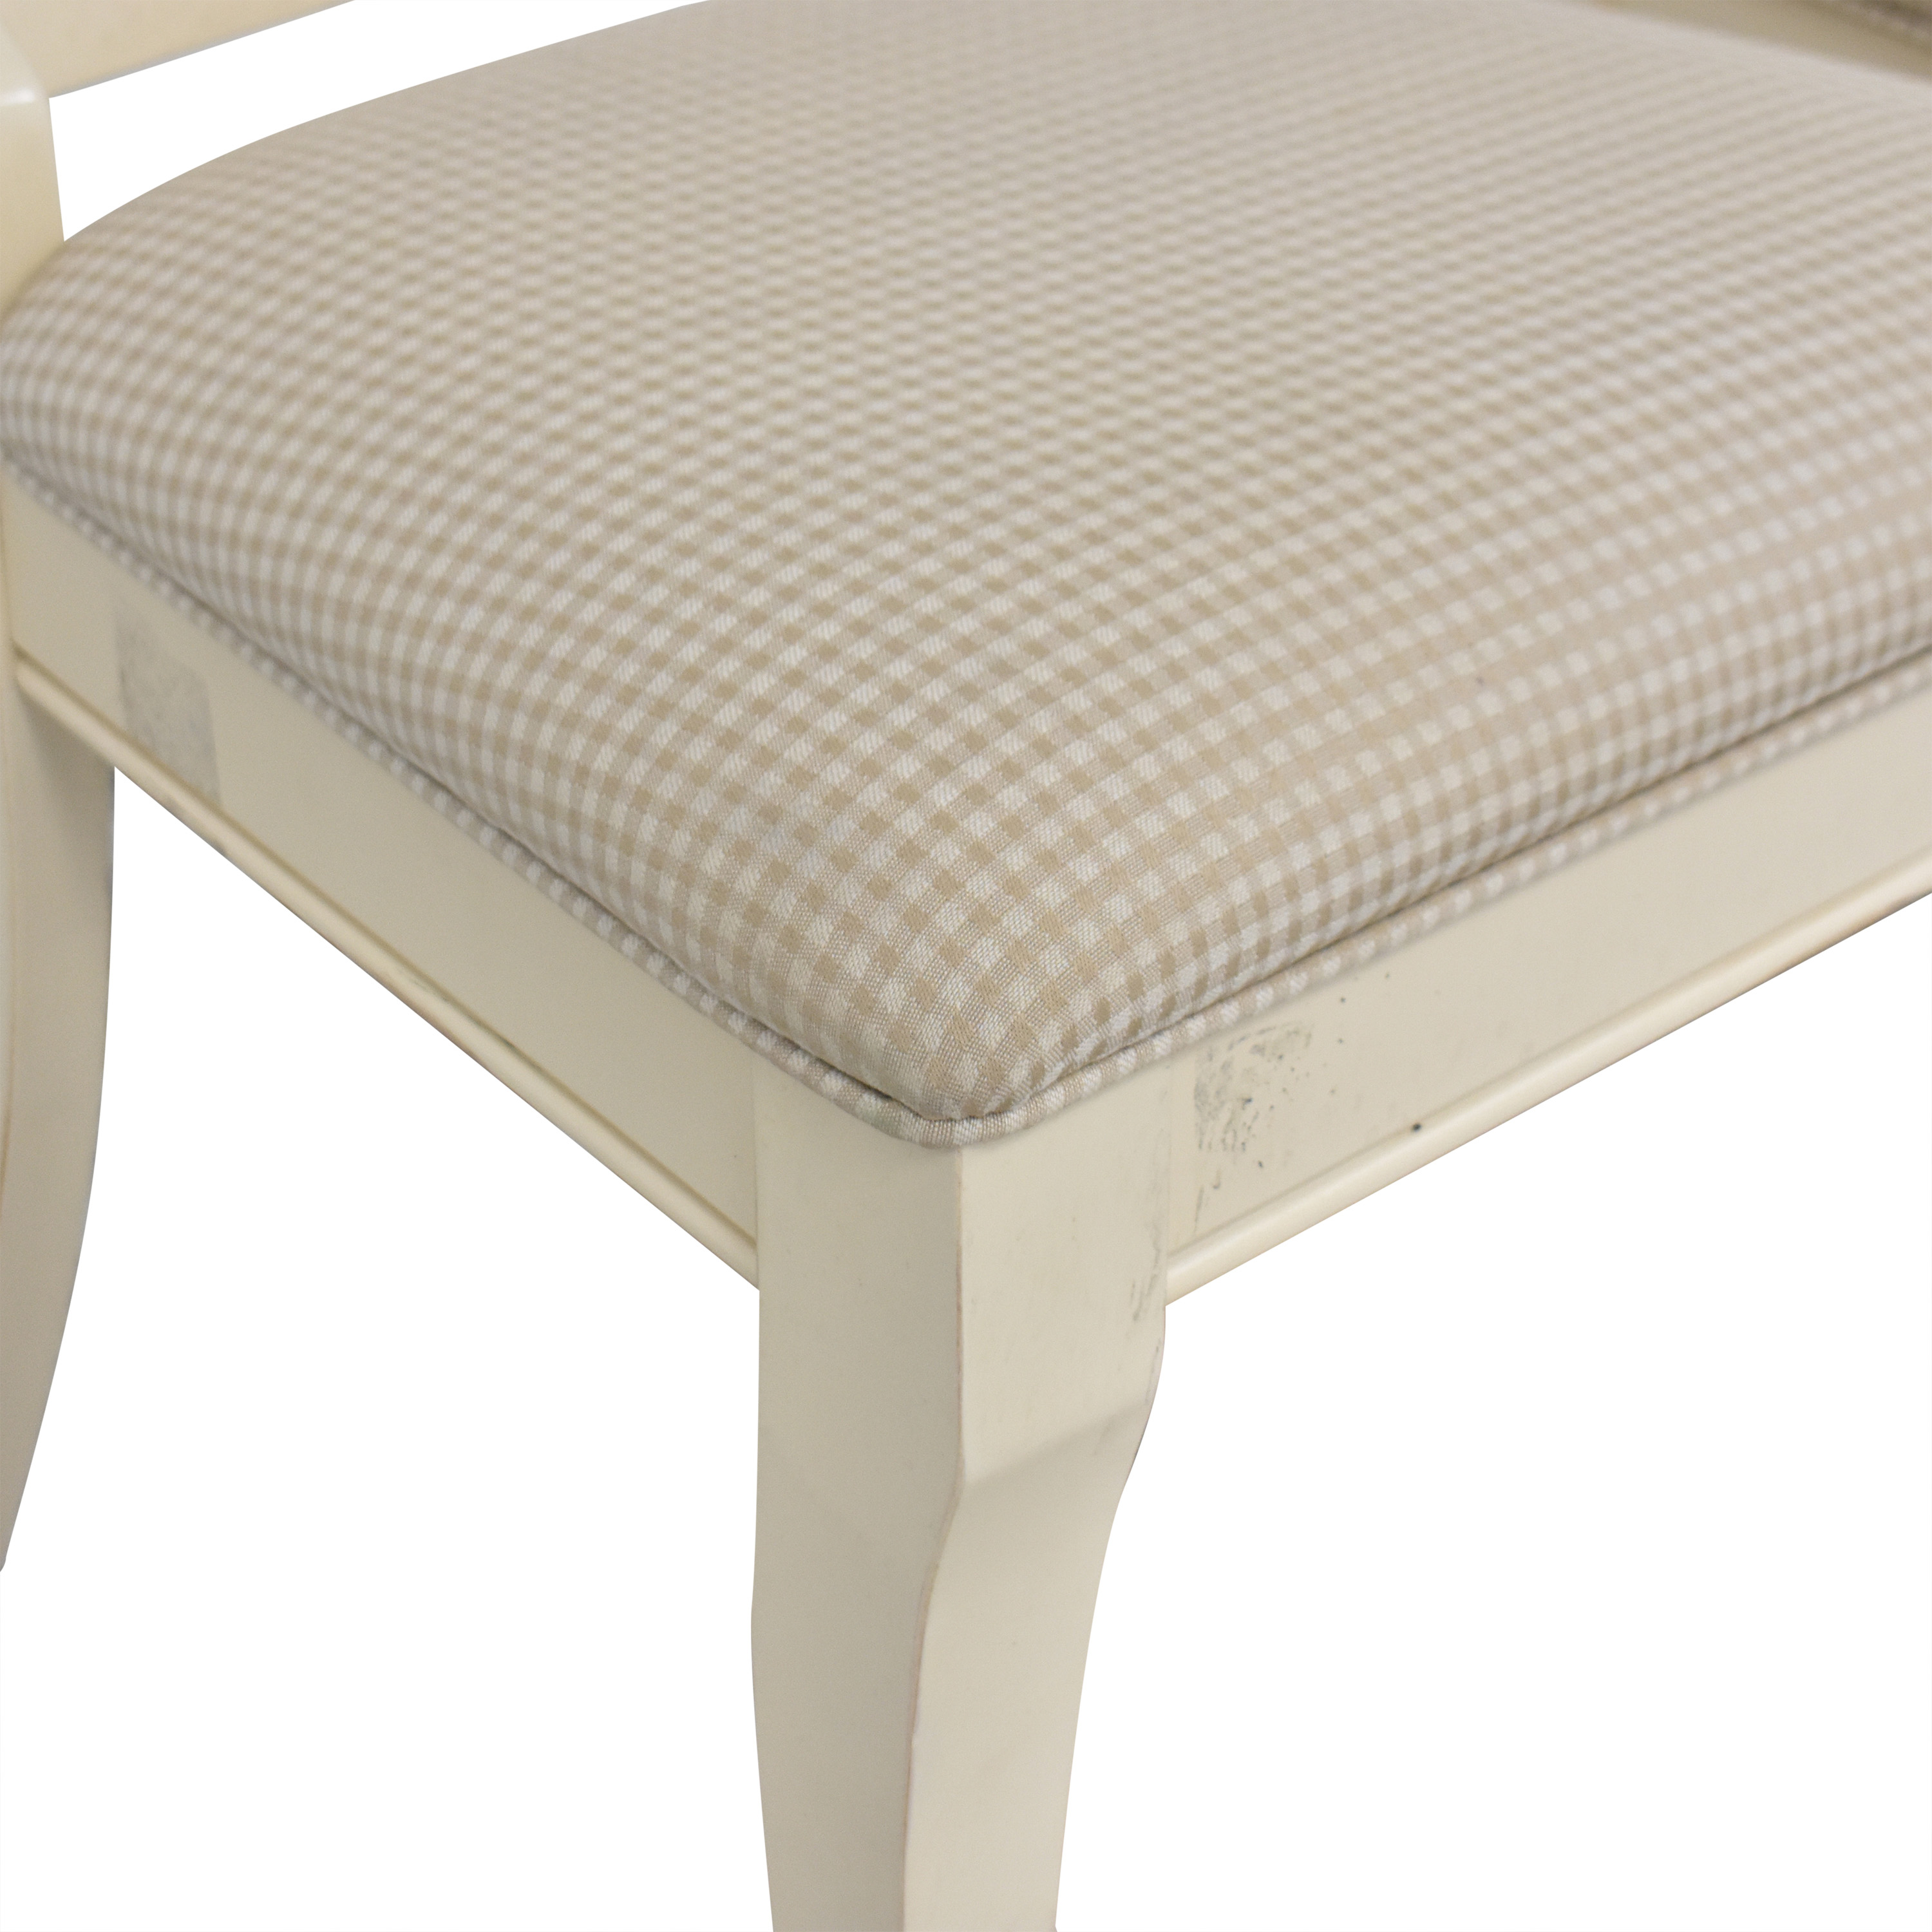 American Furniture Warehouse American Furniture Warehouse Cross Back Dining Chairs for sale